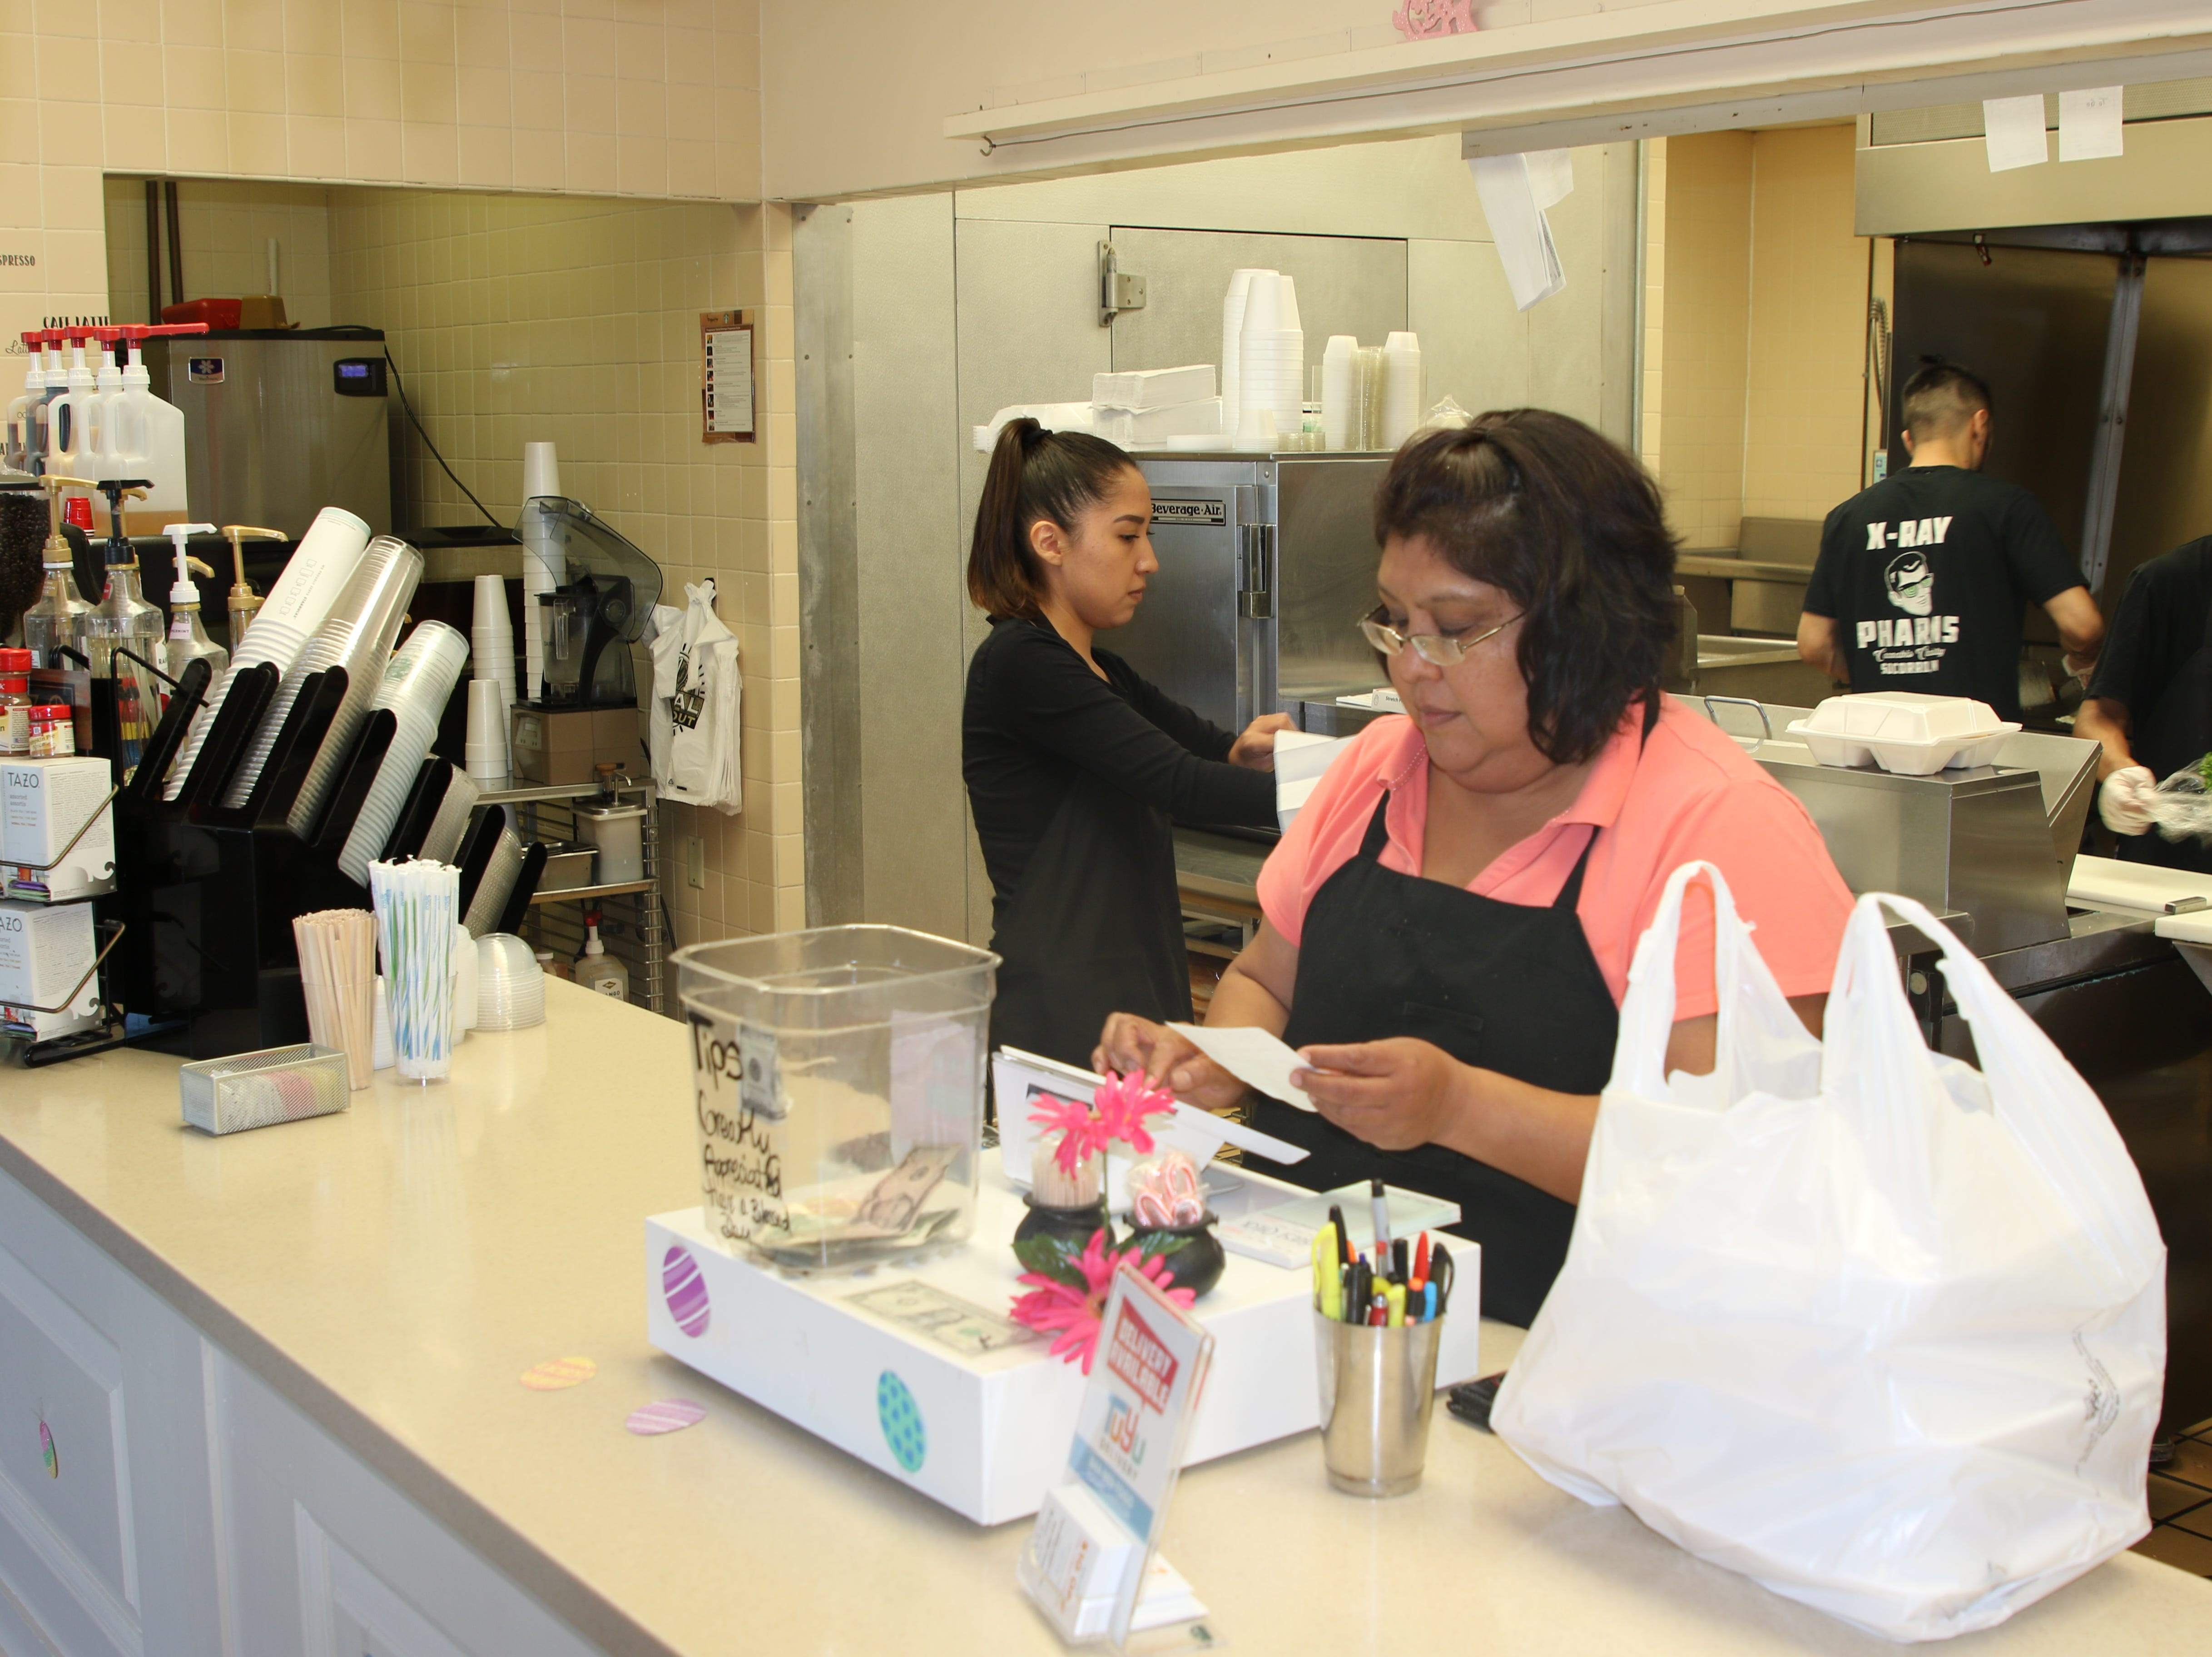 Brittany Tsosie (left) and Charlene Waddoups work behind the counter at PJ and B's Rio Cafe in Carlsbad.